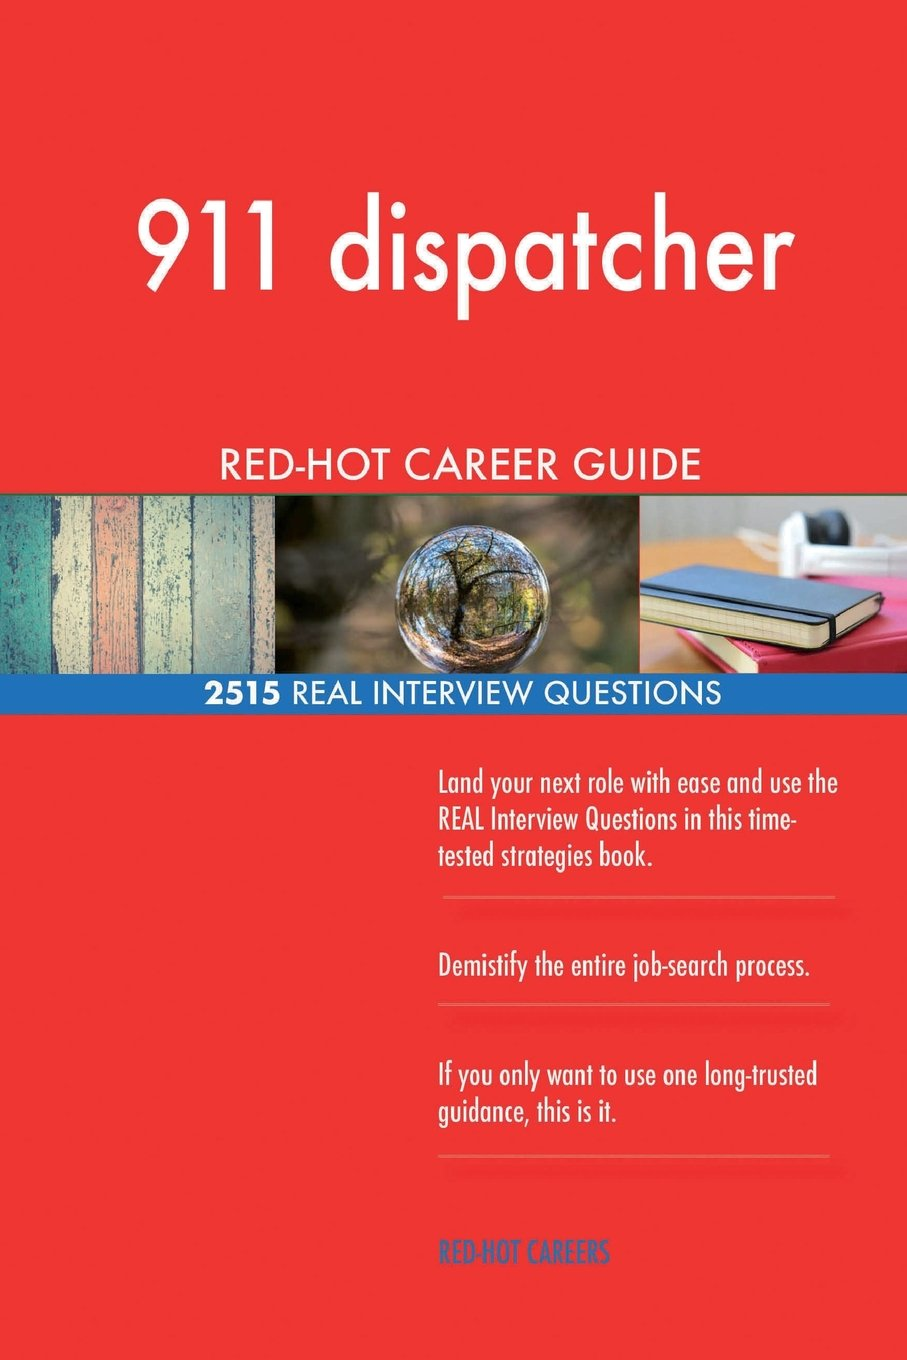 Real Time 911 >> 911 Dispatcher Red Hot Career Guide 2515 Real Interview